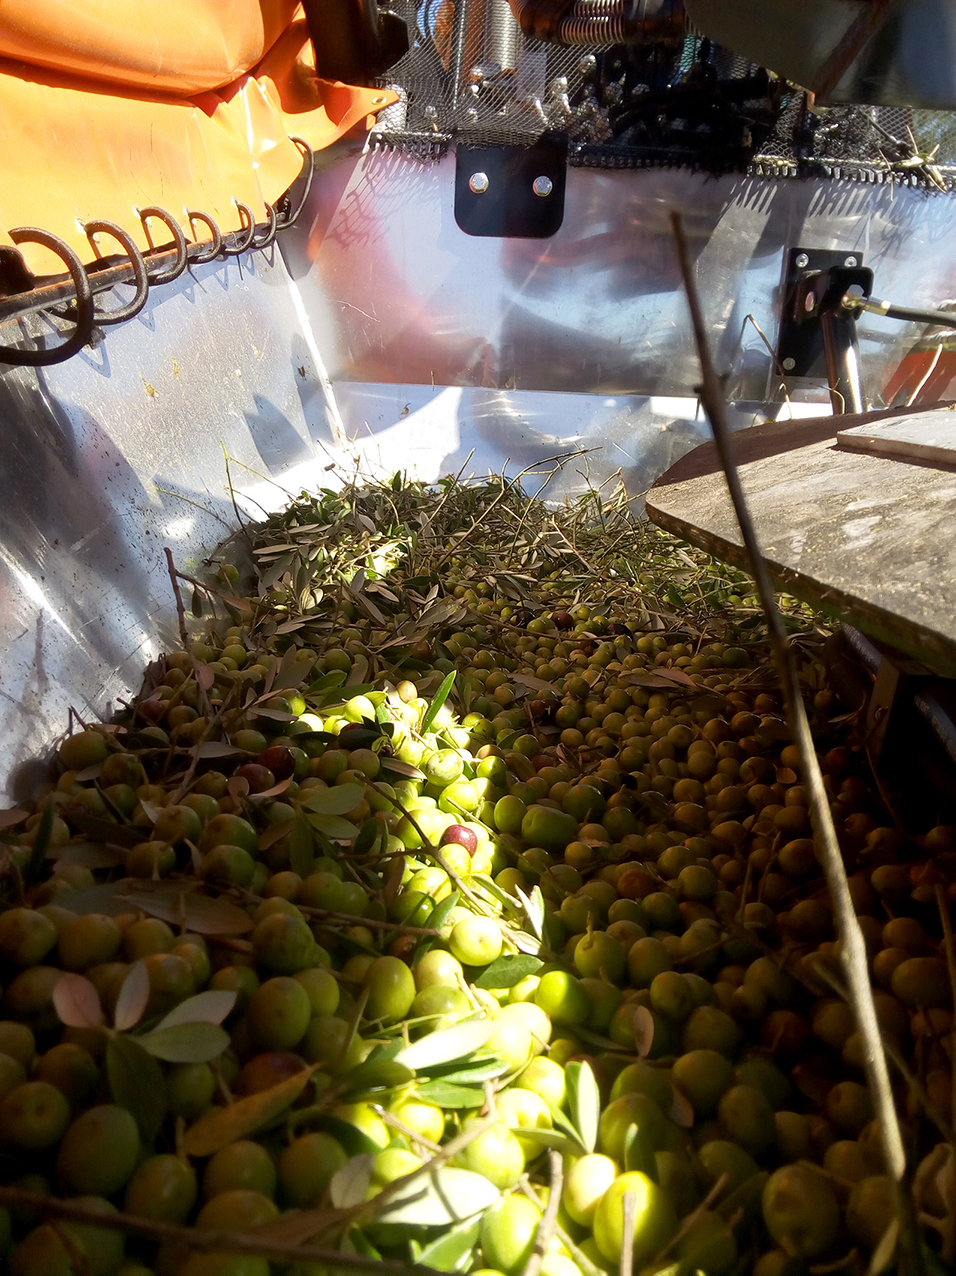 olives_and_dried_fruits_vibration_agromelca